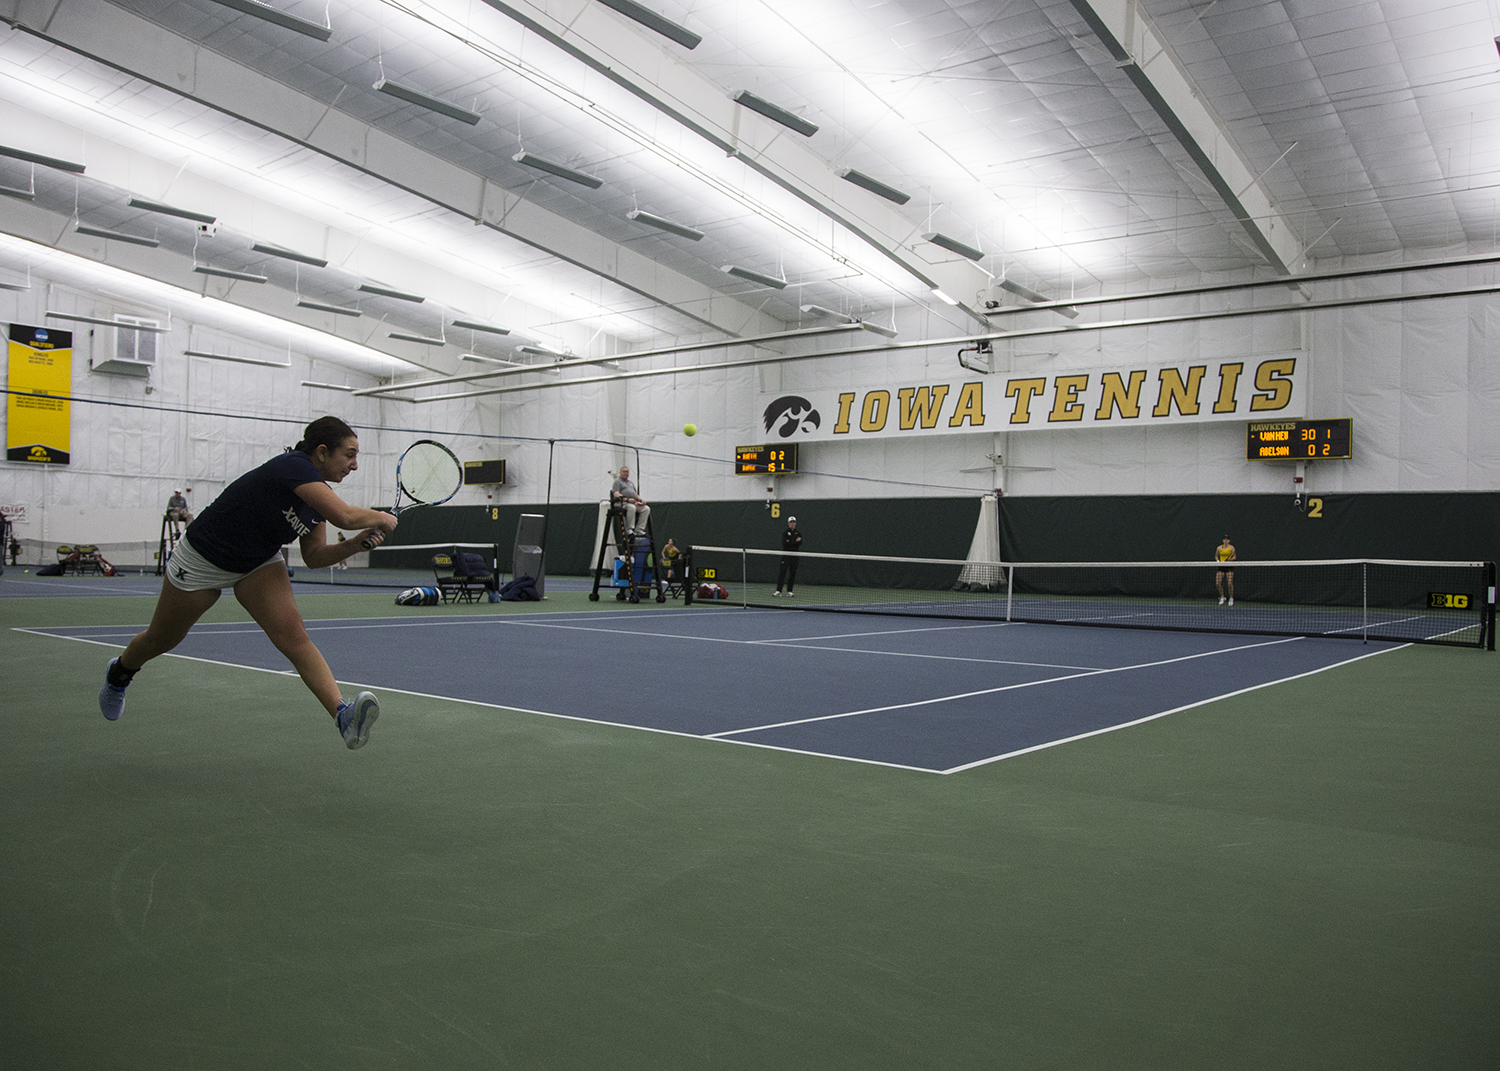 Xavier%27s+Sophie+Abelson+returns+a+serve+during+a+tennis+match+between+Iowa+and+Xavier+at+the+Hawkeye+Tennis+and+Recreation+Complex+on+Friday%2C+January+18%2C+2019.+The+Hawkeyes+swept+the+match+against+the+Musketeers%2C+7-0.